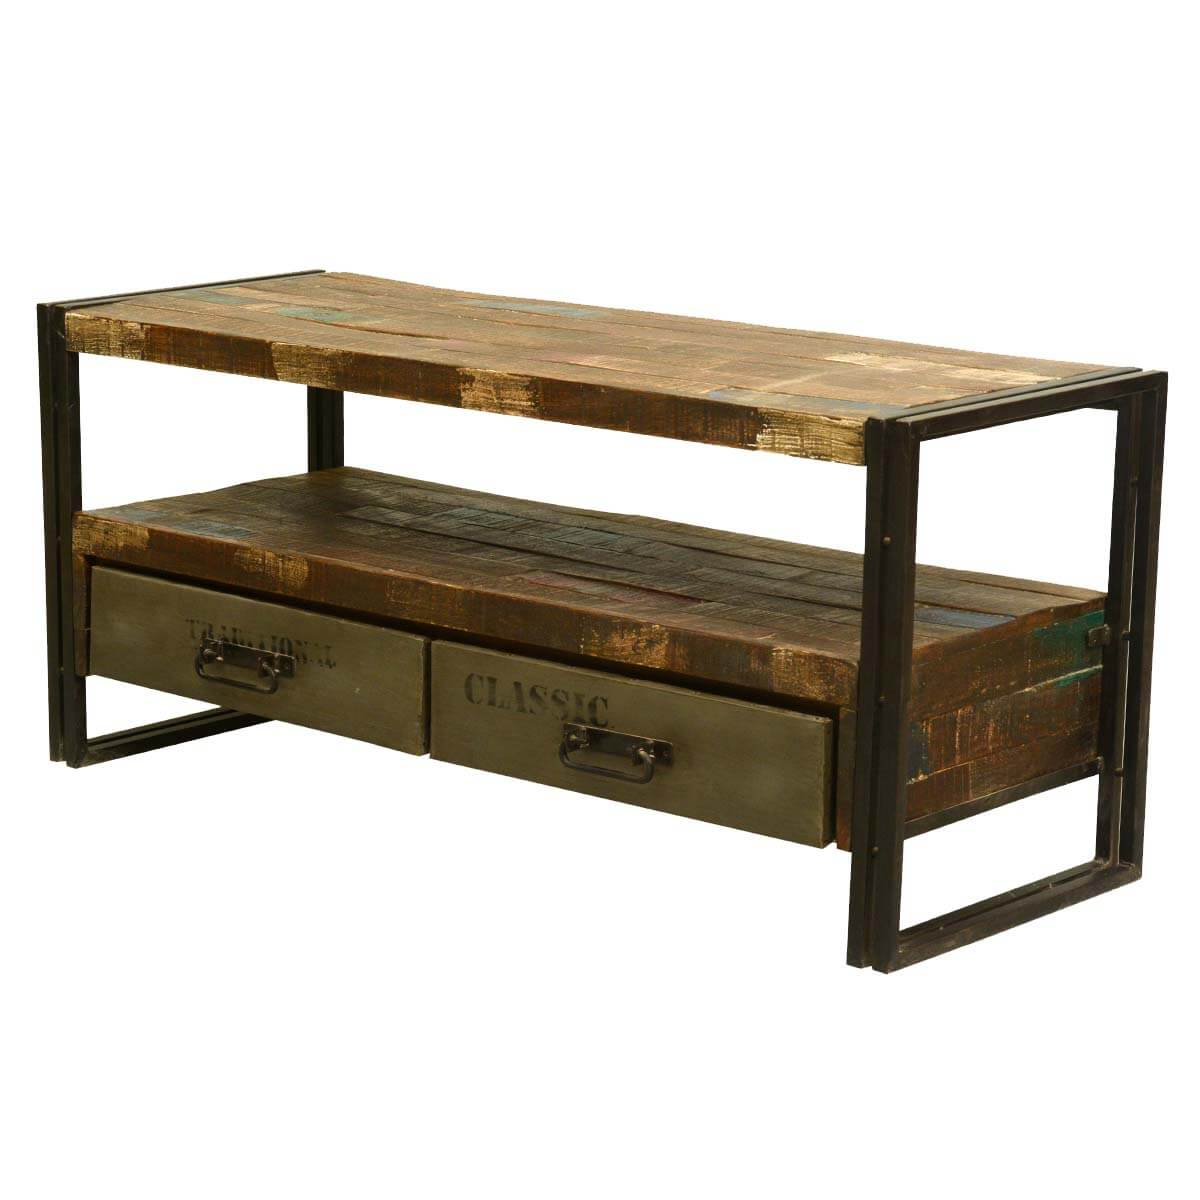 ... Room Rustic Modern Industrial Reclaimed Wood & Iron Media Console